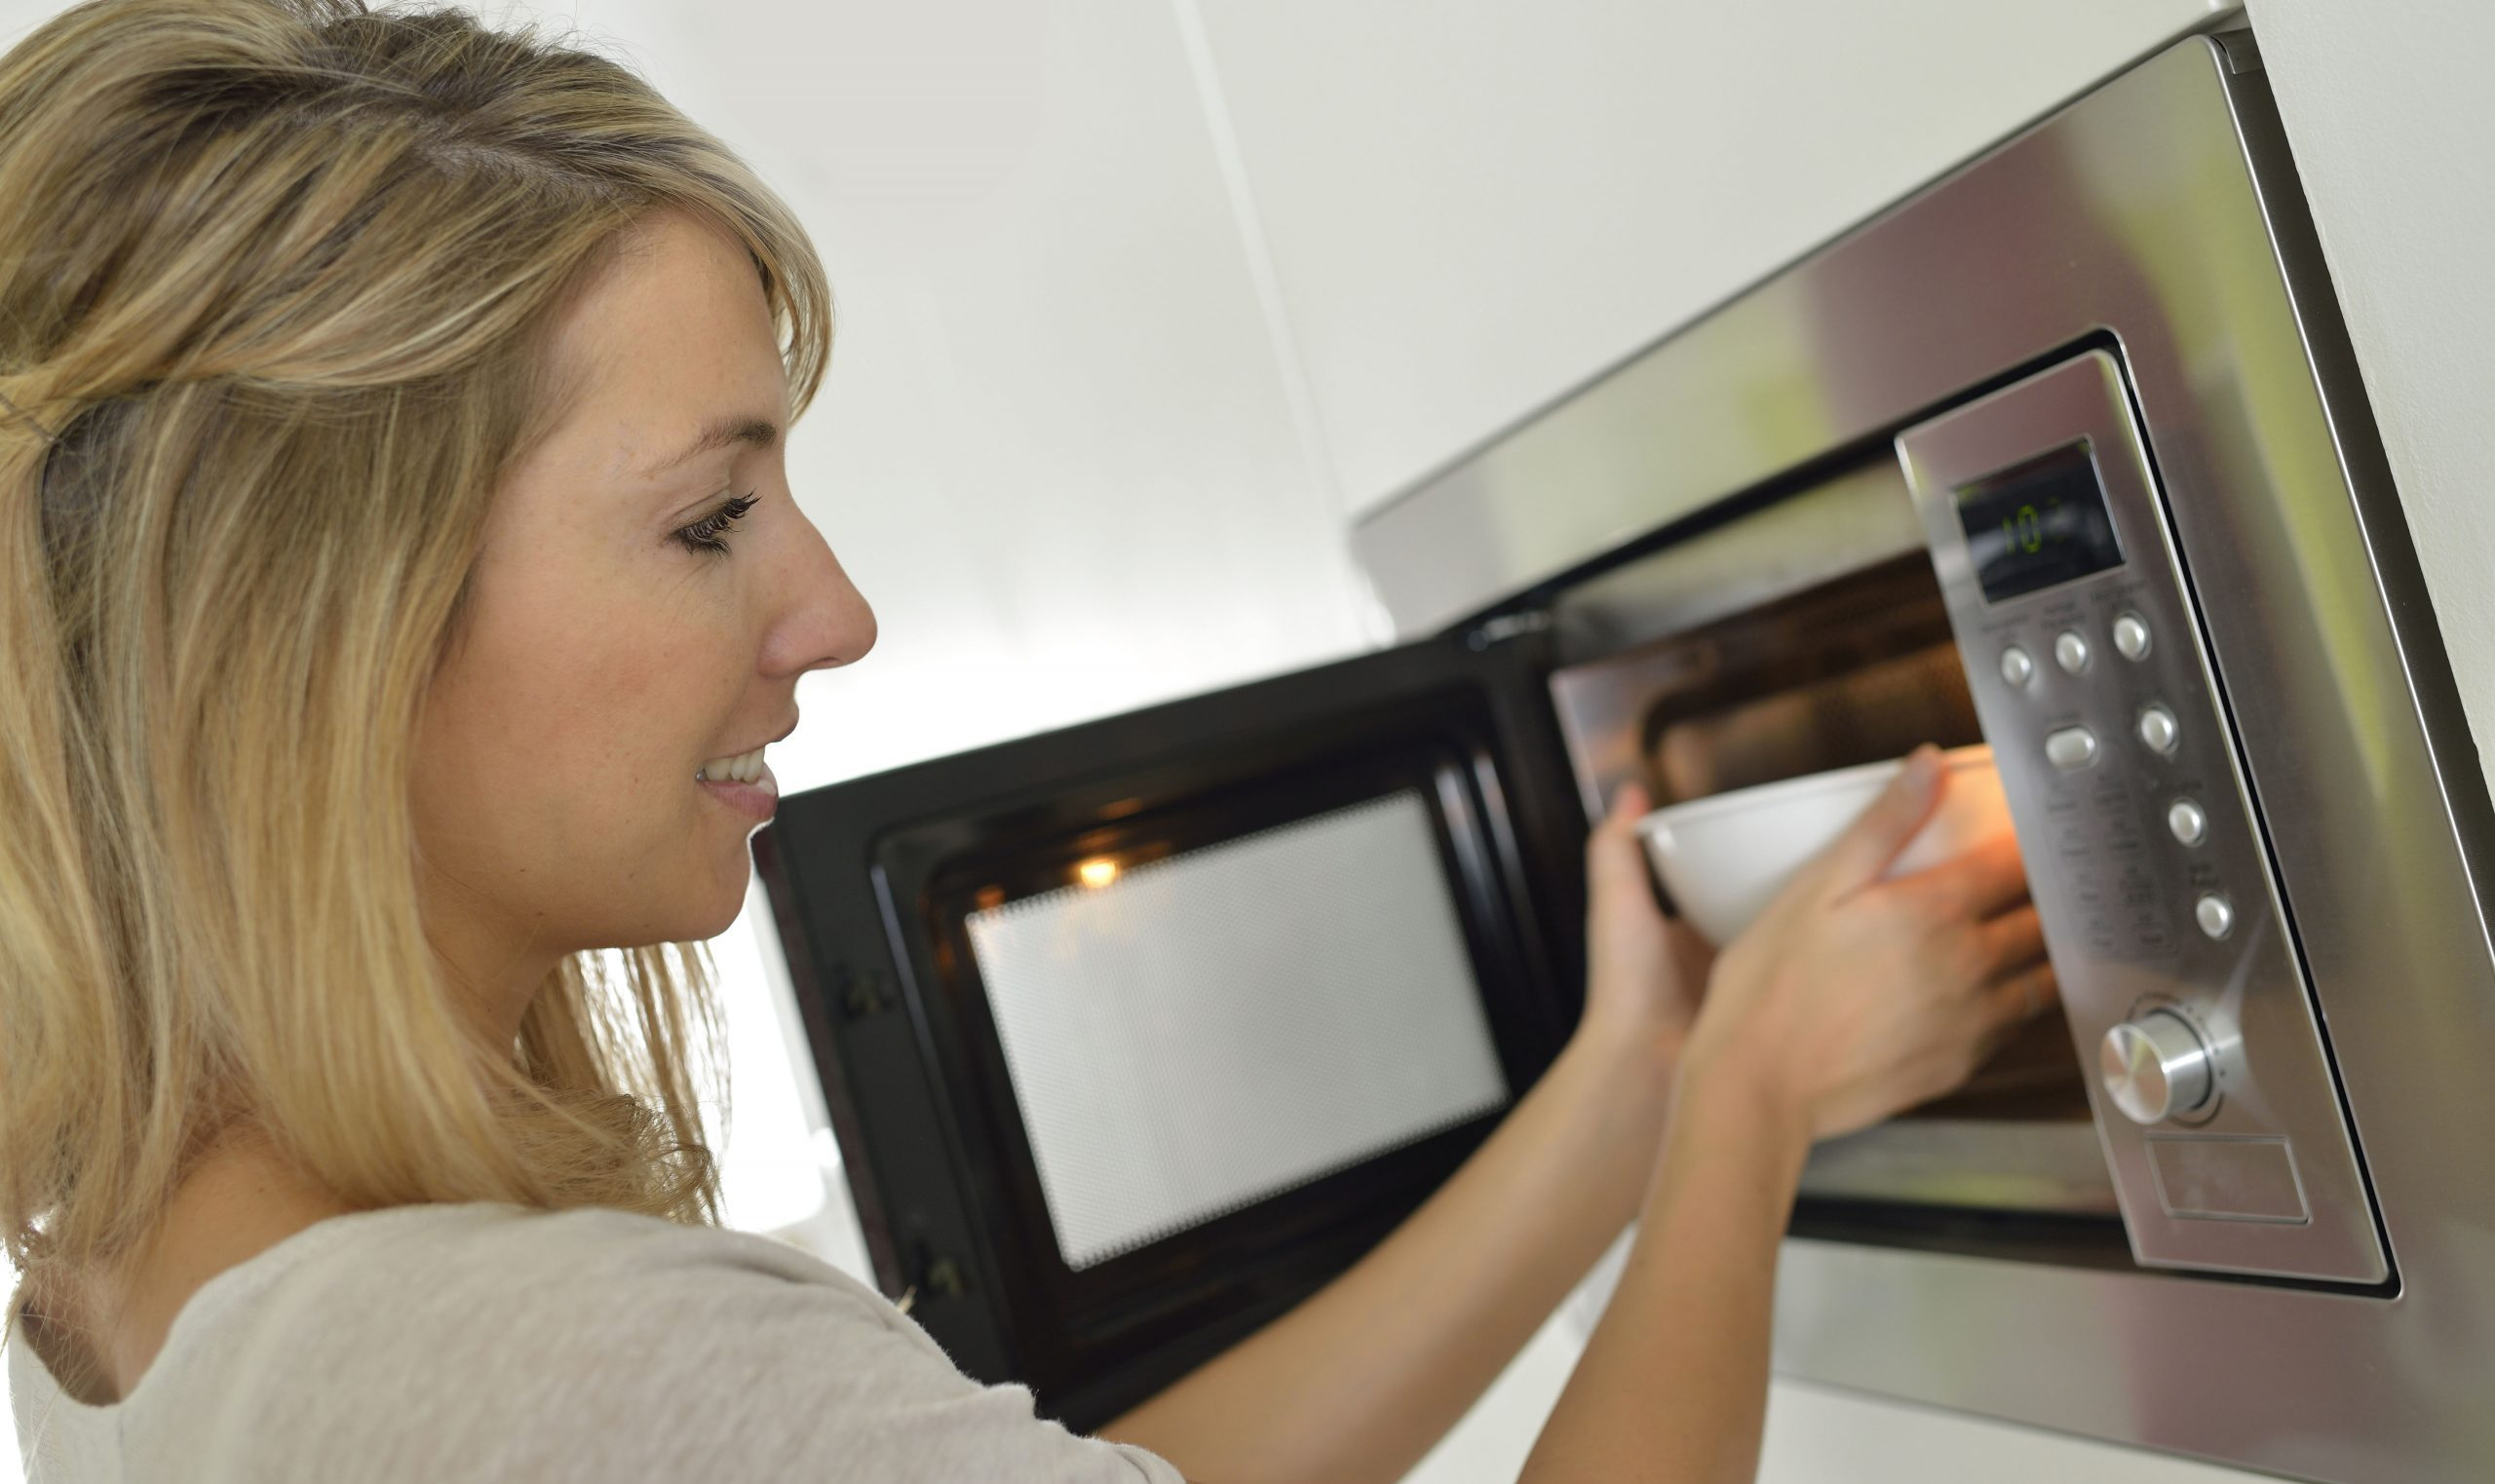 Coronavirus: Brits urged to stop using microwaves to improve WiFi speed